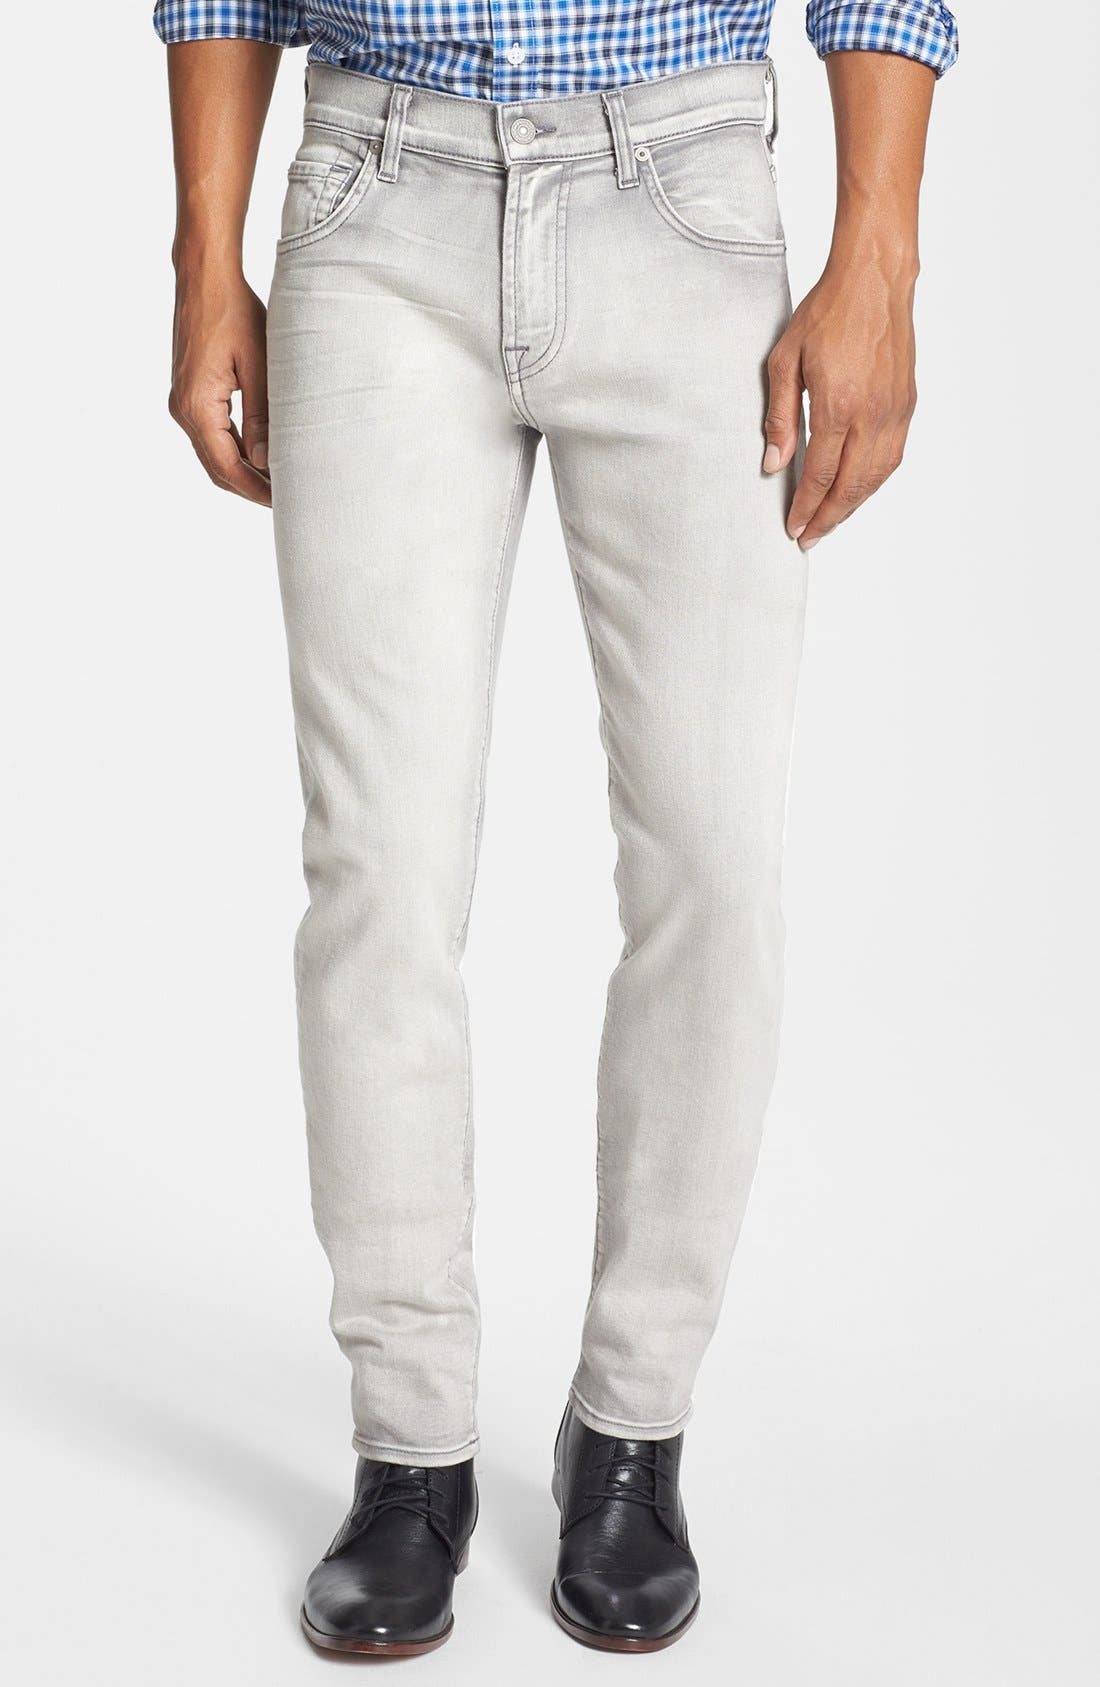 Alternate Image 1 Selected - 7 For All Mankind® 'Paxtyn' Skinny Fit Jeans (Weathered White)